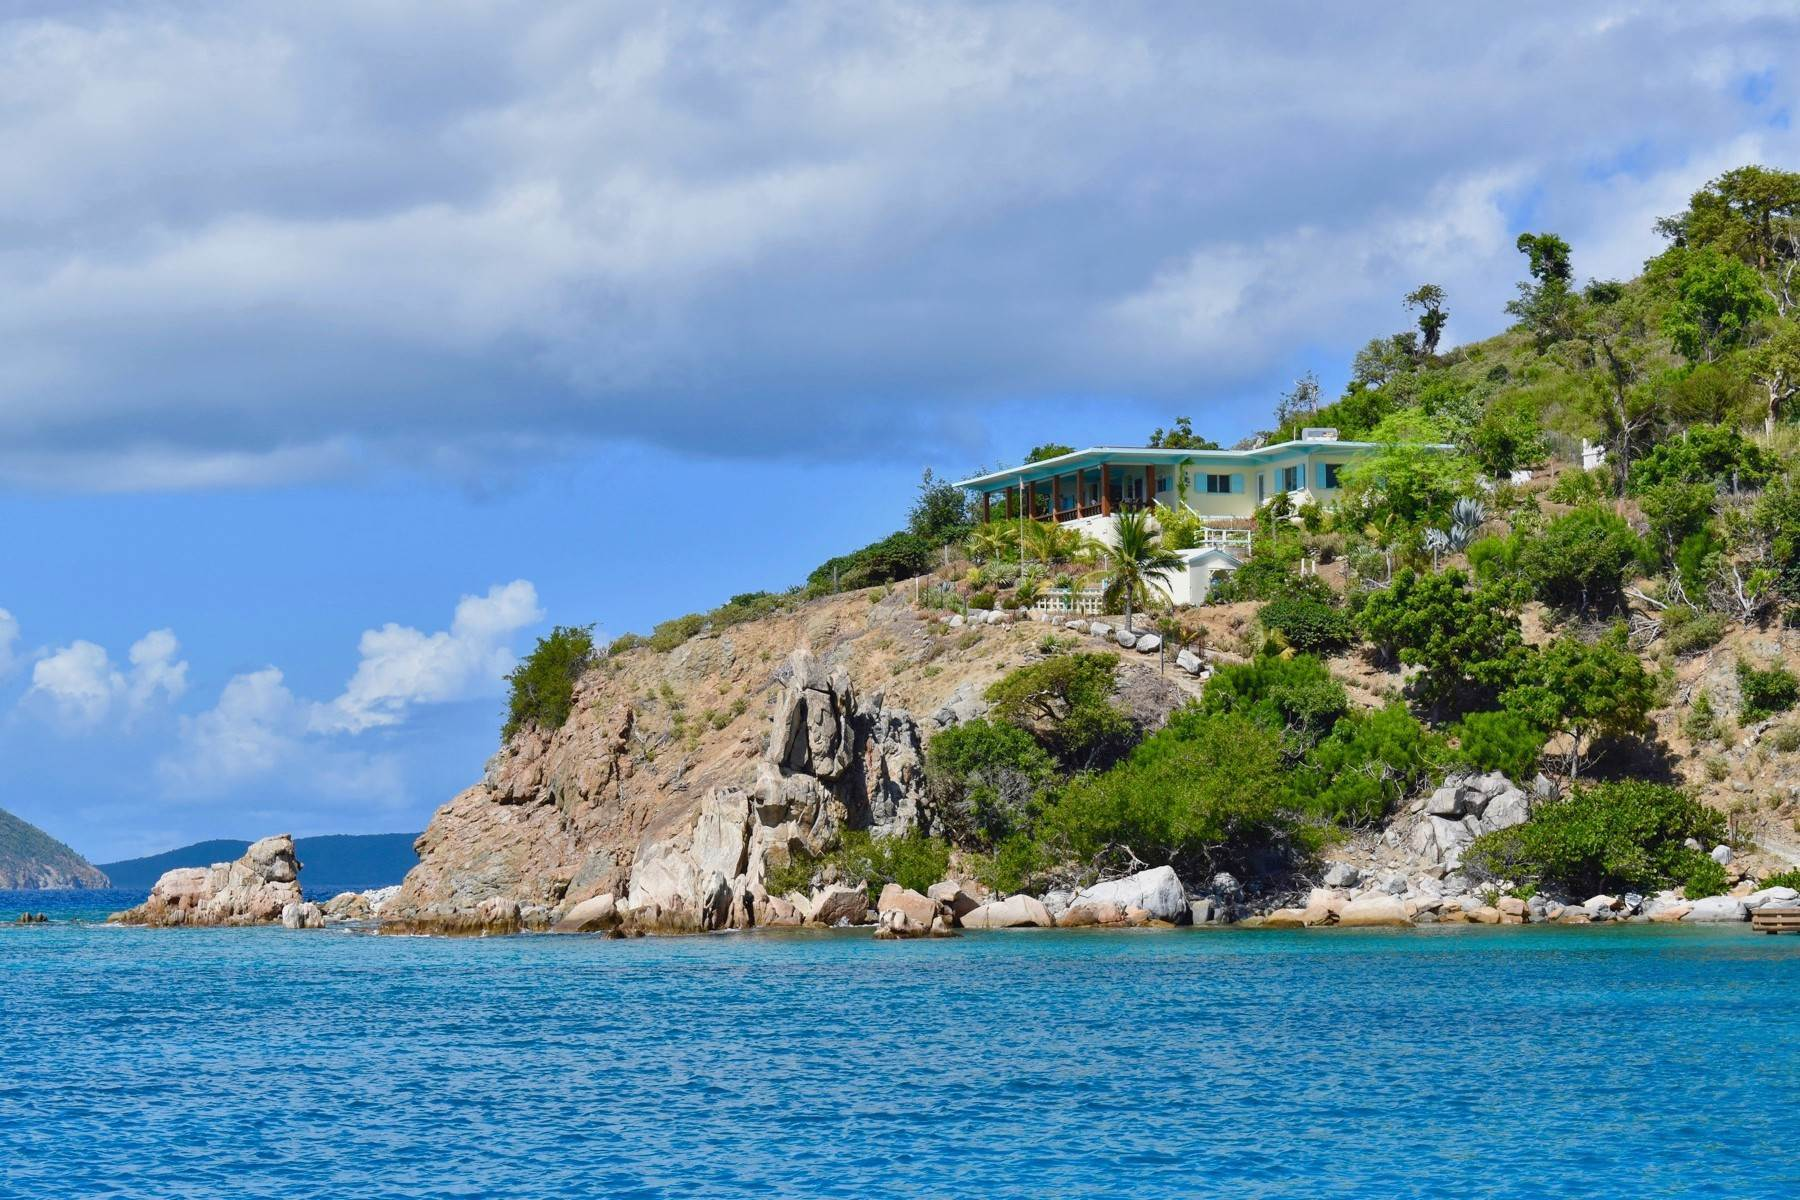 2. Single Family Homes for Sale at Other British Virgin Islands, Other Areas In The British Virgin Islands British Virgin Islands